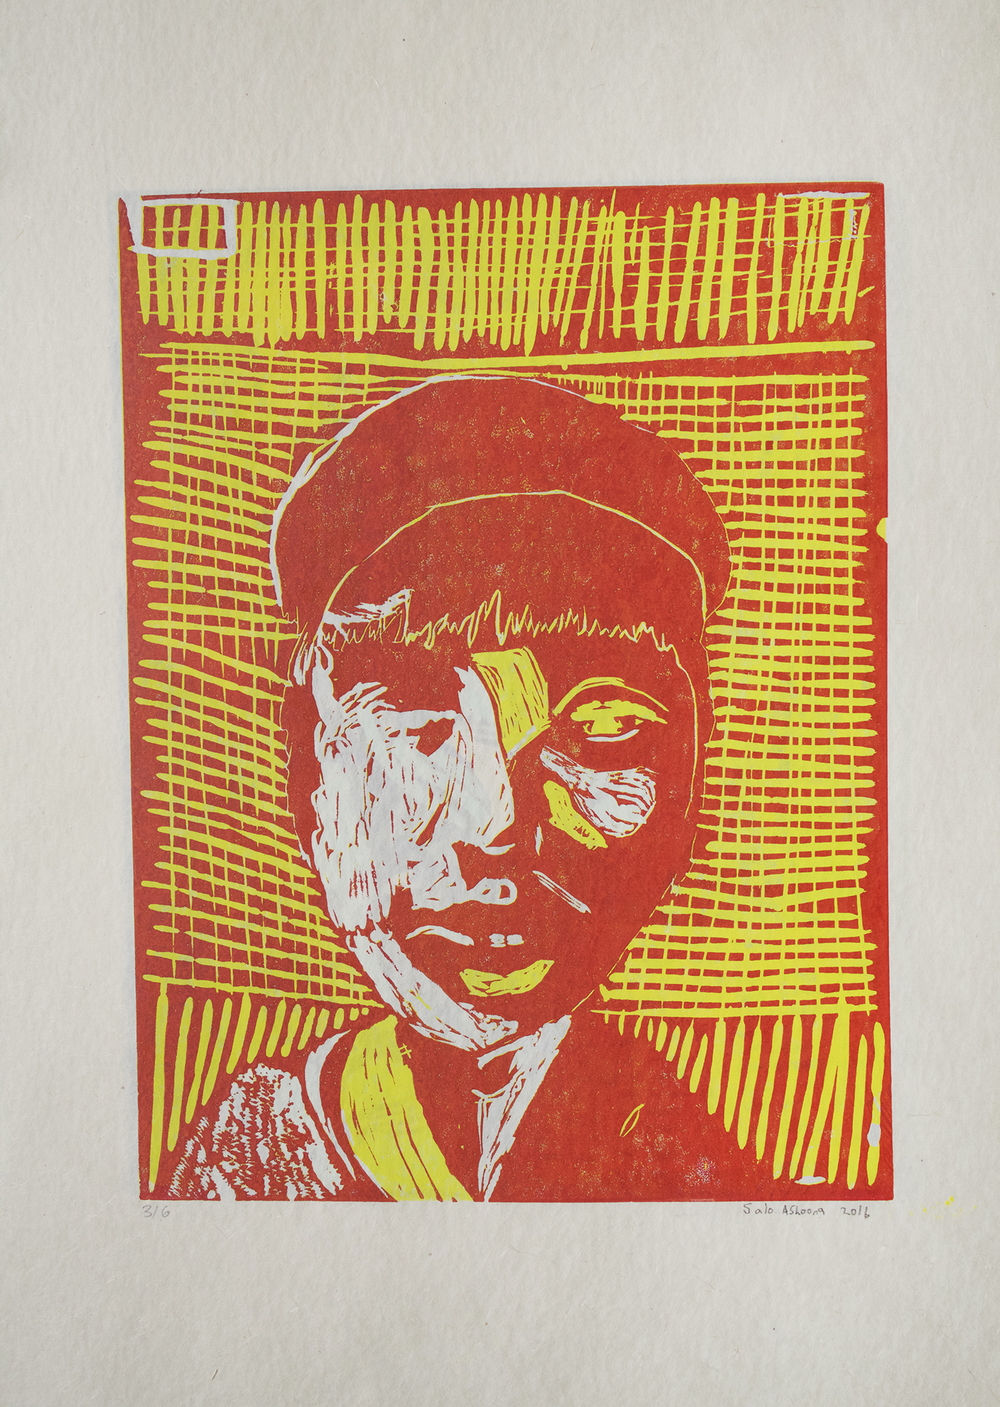 Uvanga: Self-Portrait   Salomonie Ashoona  Two-Layer Linocut Print on Washi  15.5 x 21.5""